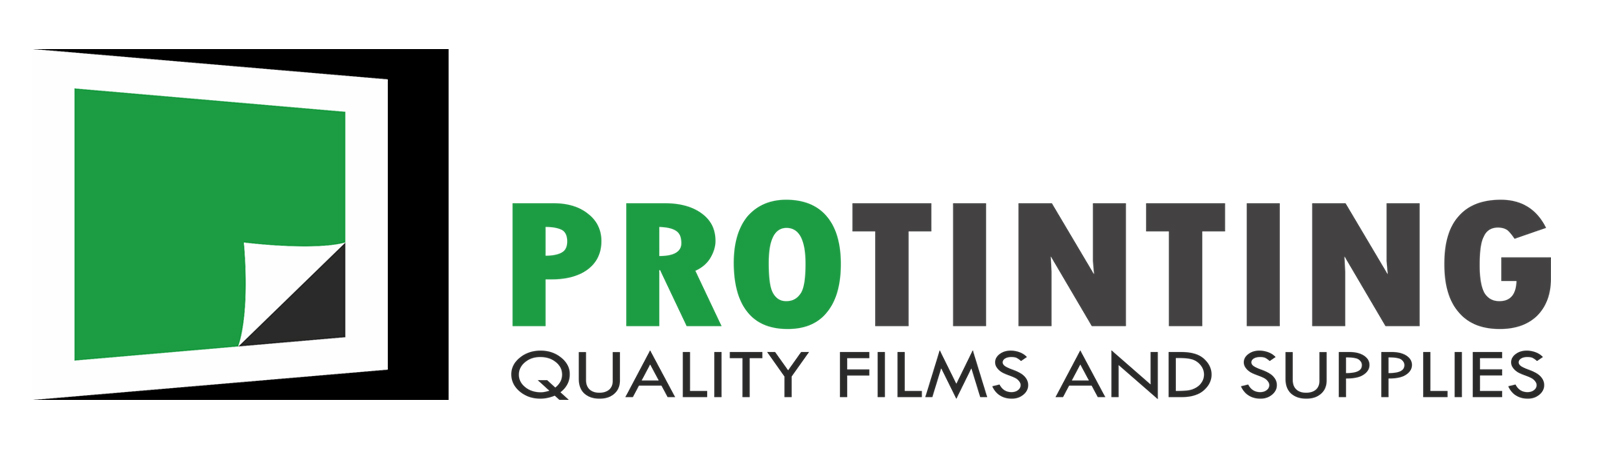 Protinting Quality Films and Supplies